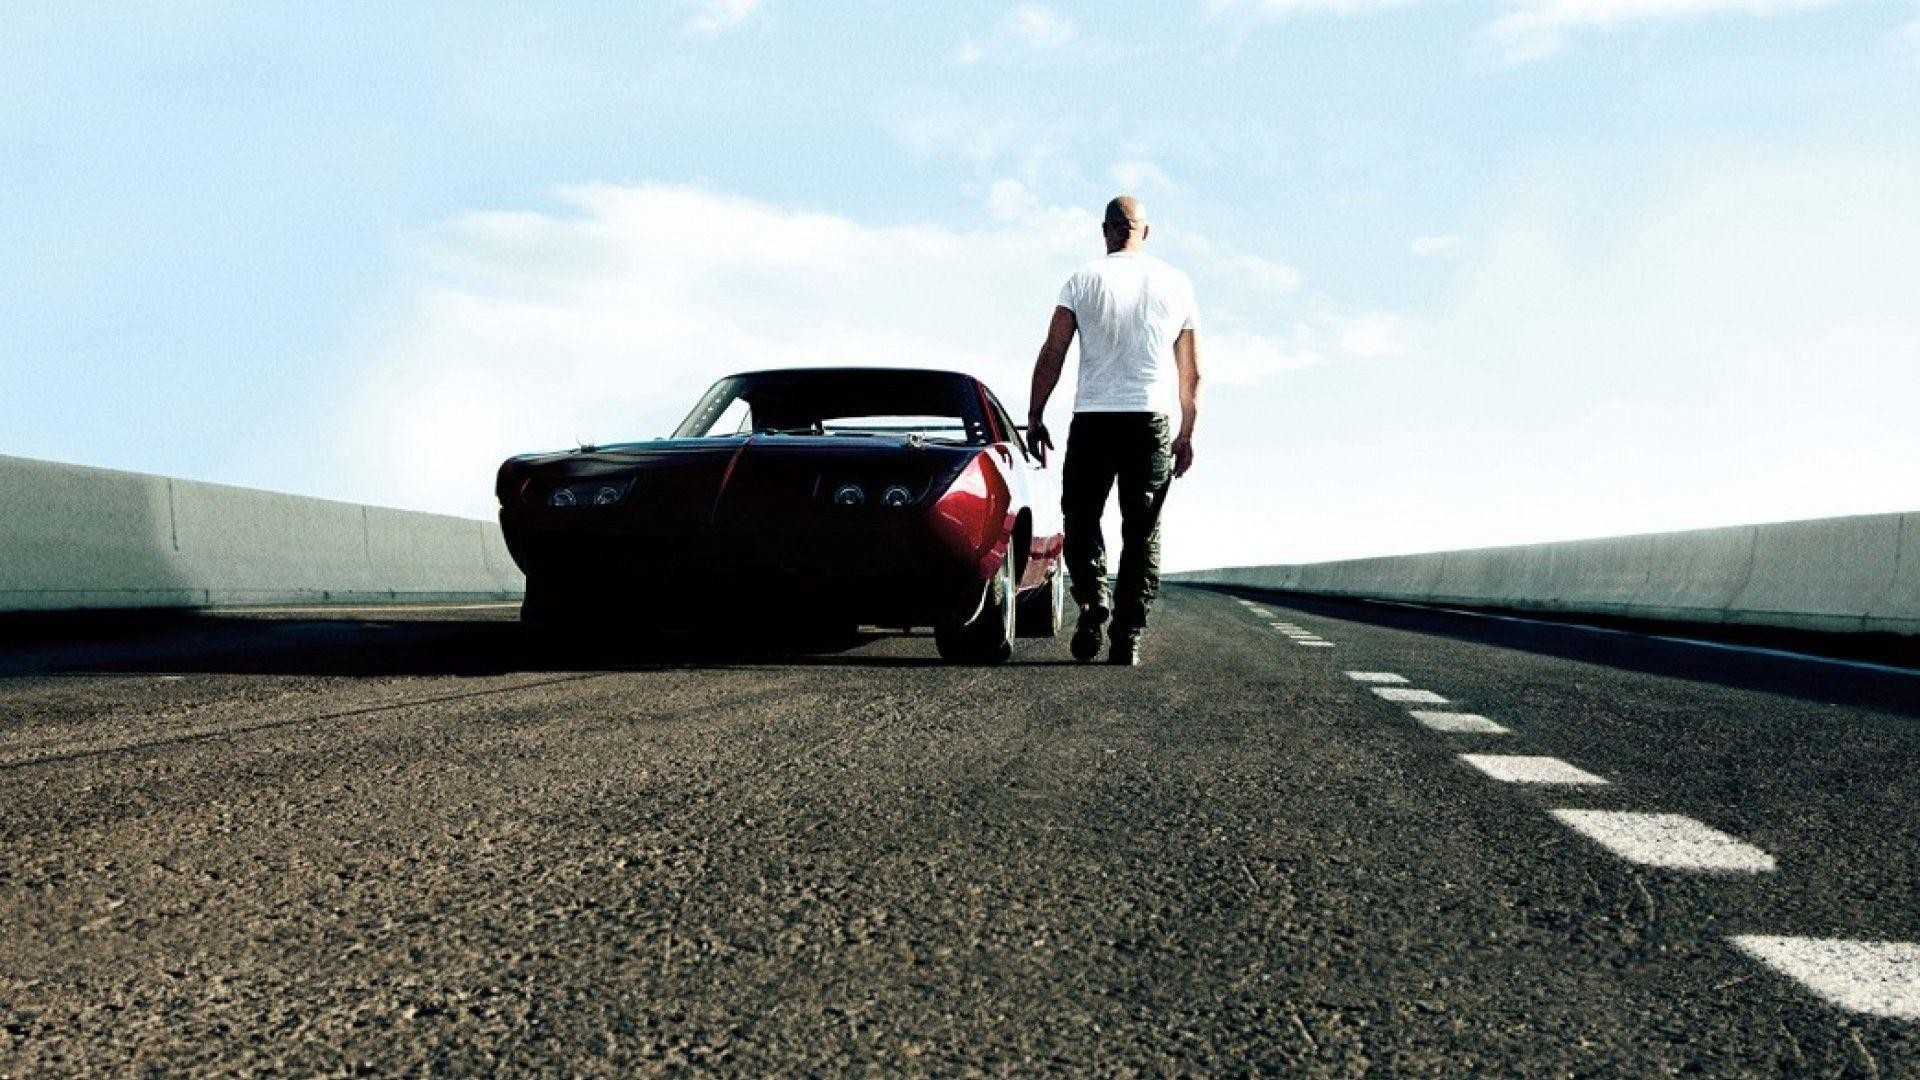 1920x1080 Fast And Furious Cars Vin Diesel Widescreen 2 HD Wallpapers .